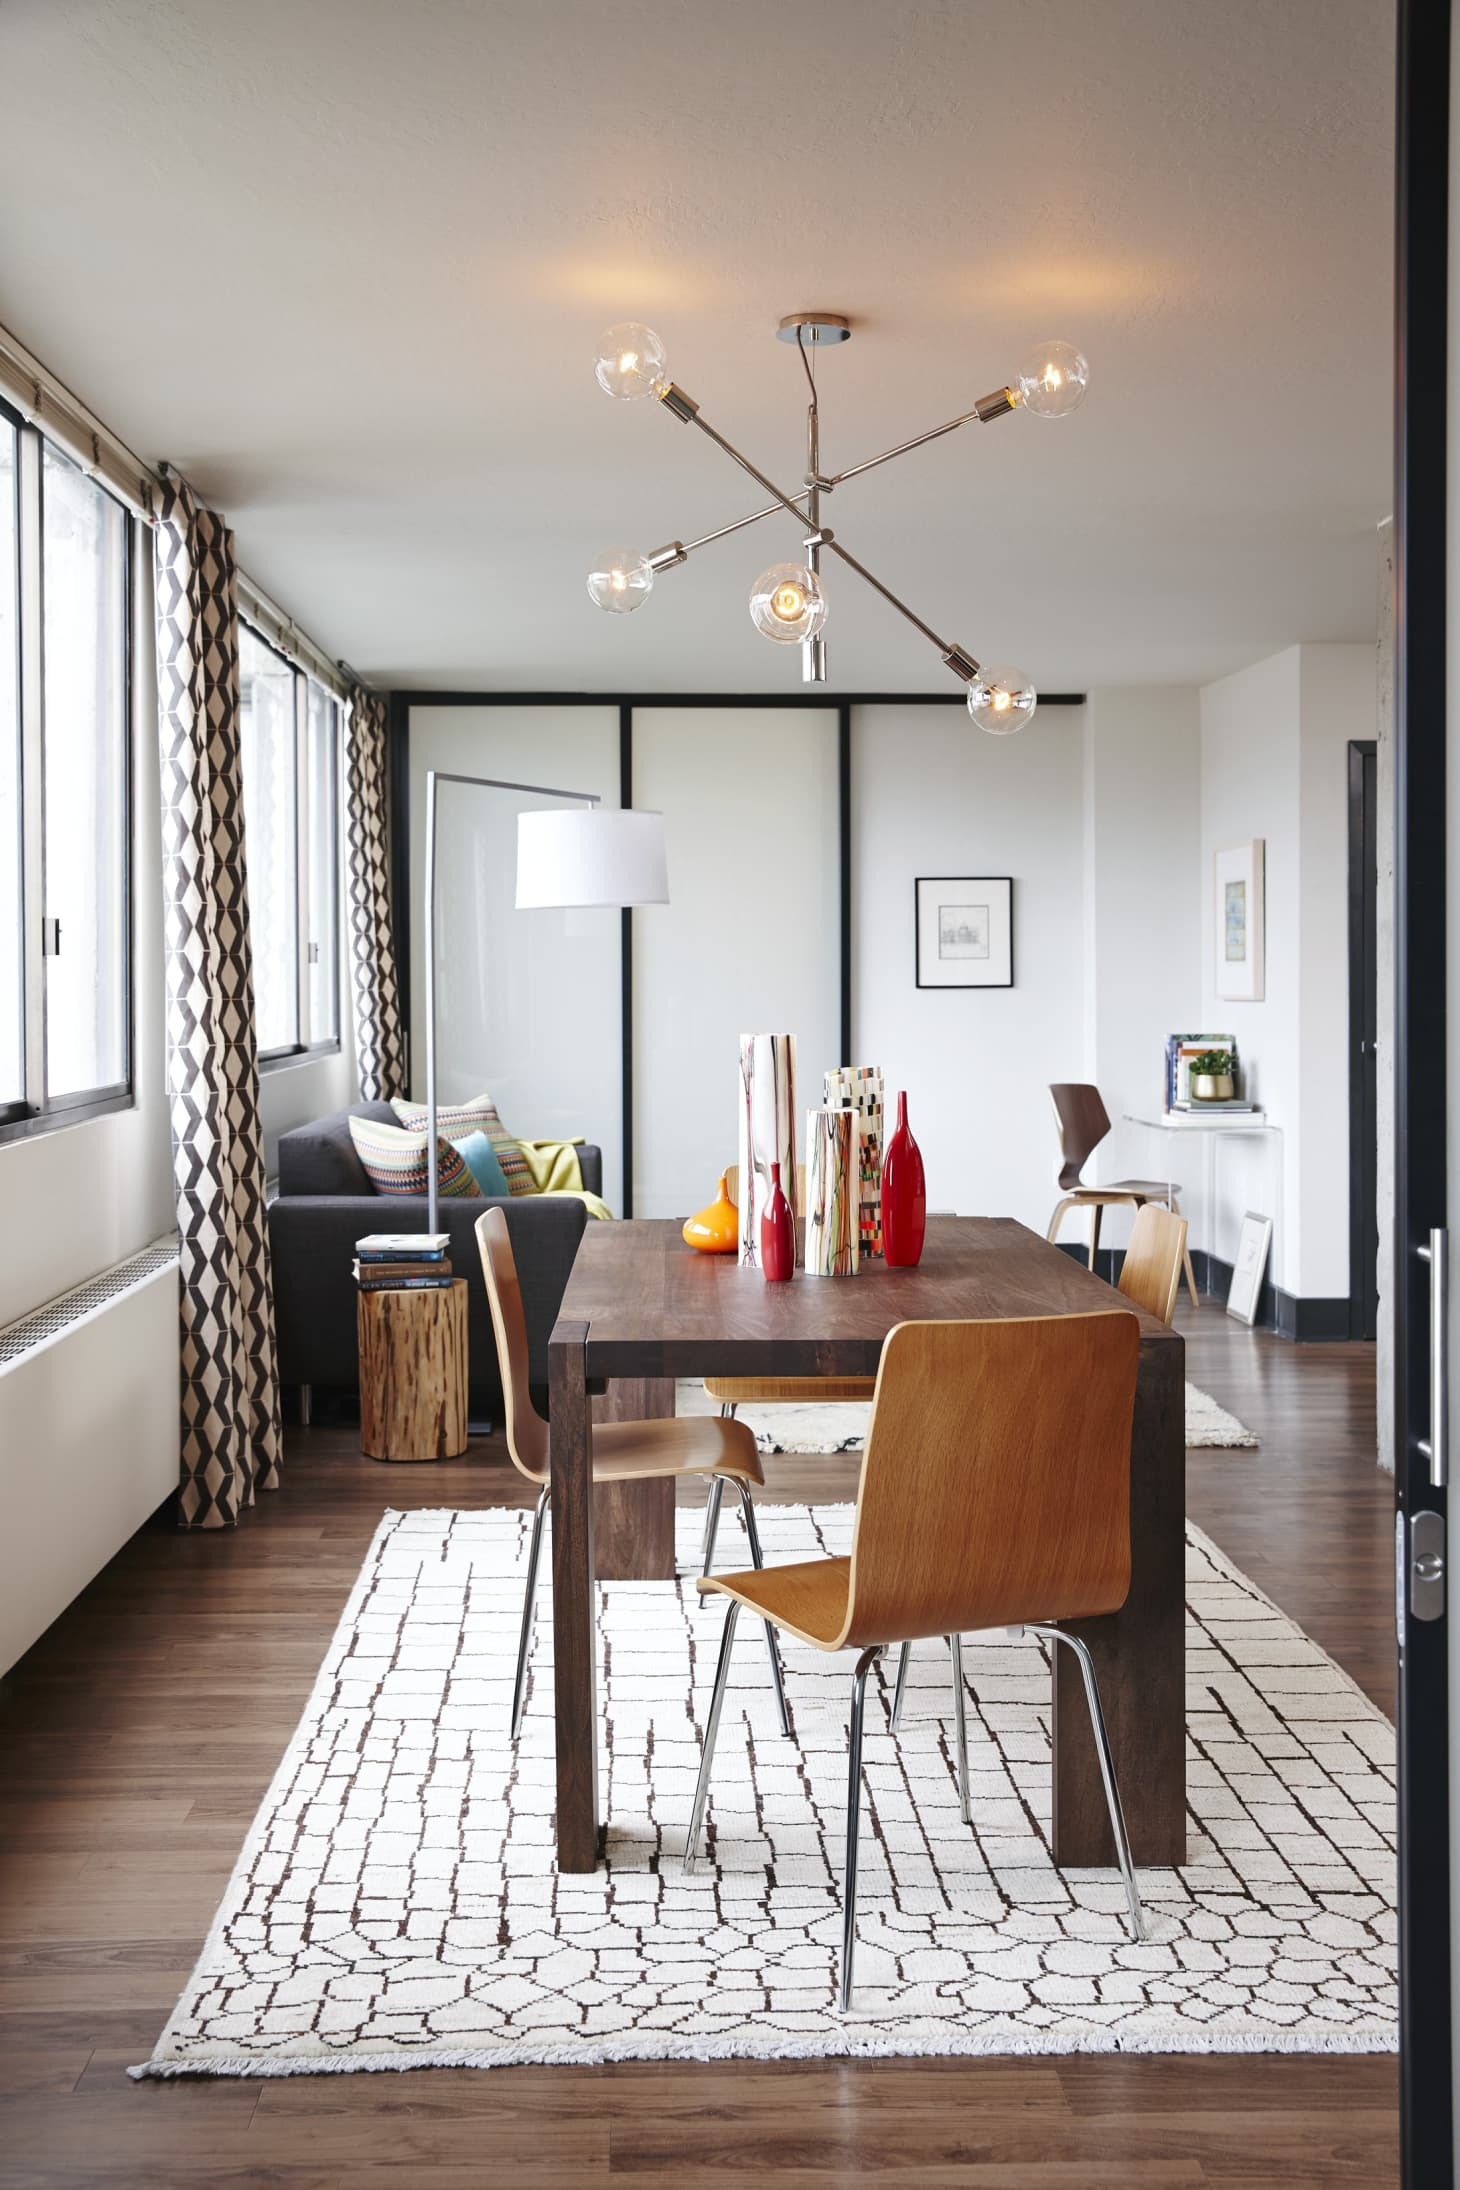 title | Dining room rug ideas